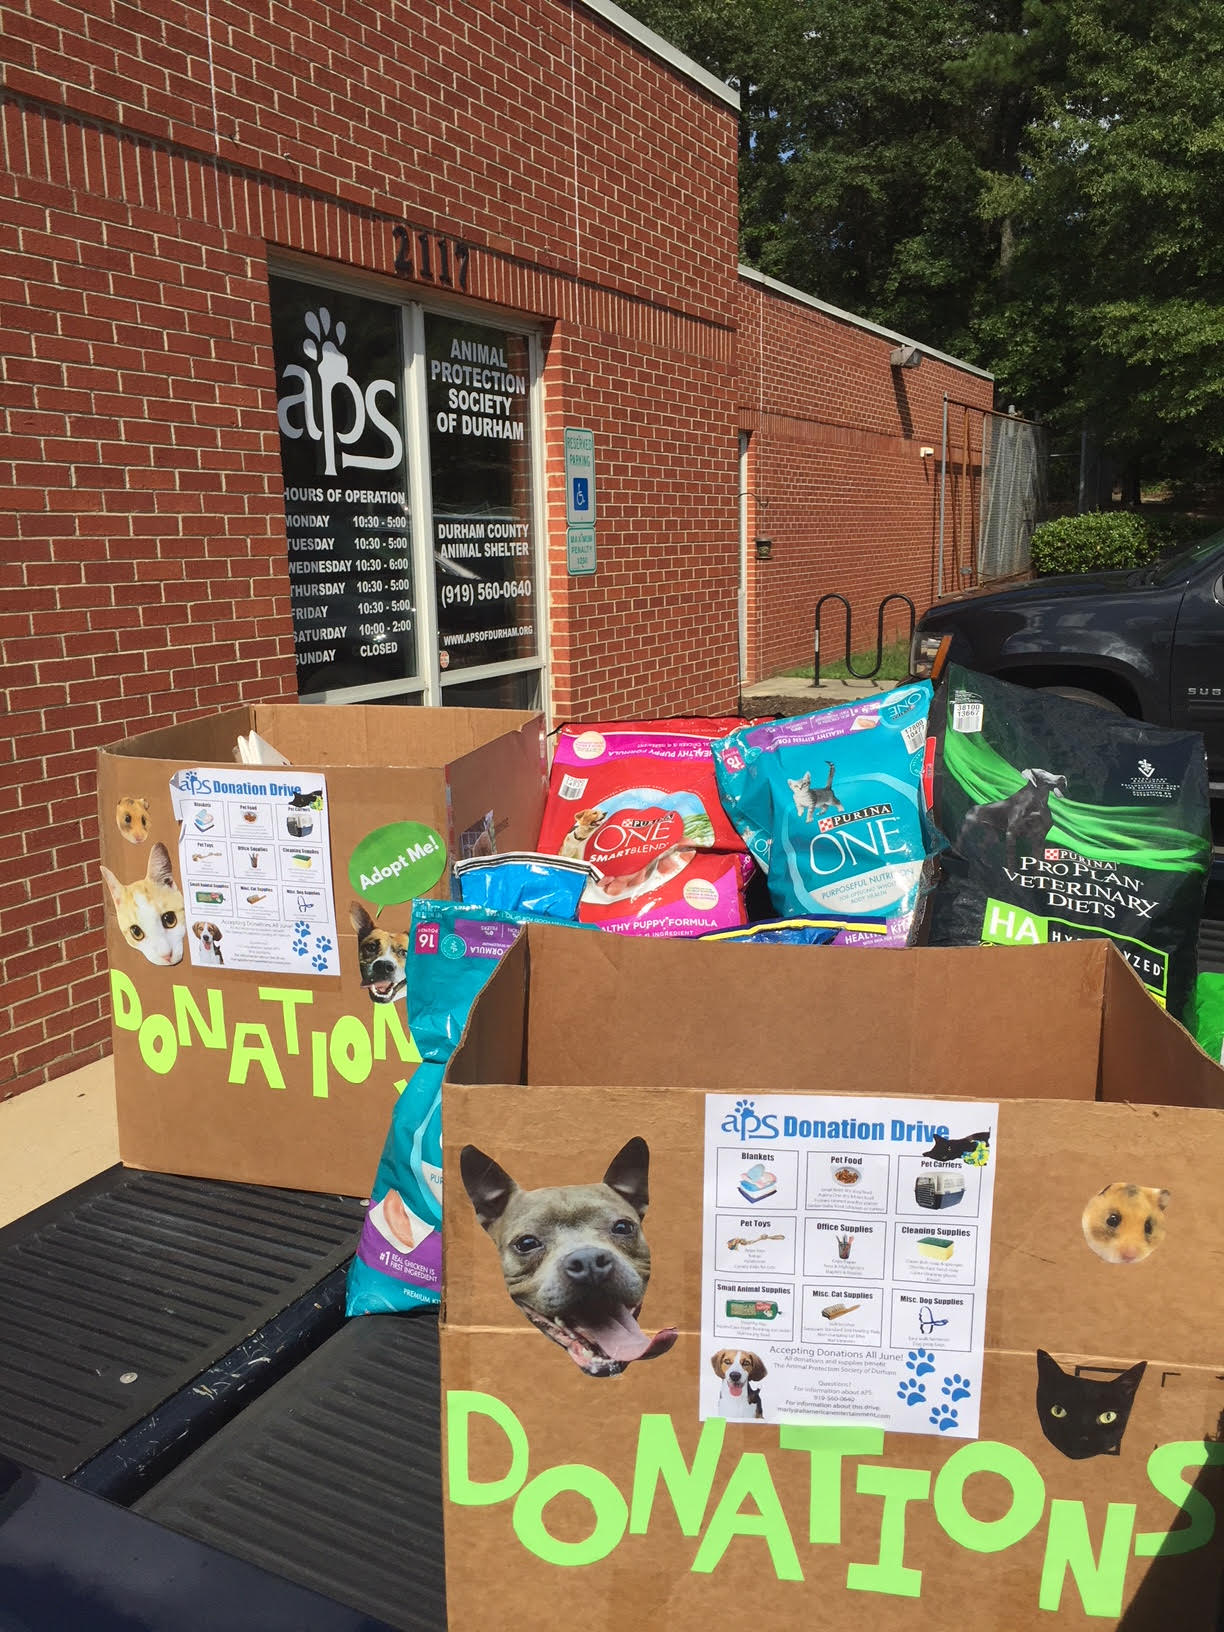 Pasted_image_at_2018-08-28__11_54_AM AAE Cares Holds Donation Drive for Animal Protection Society of Durham